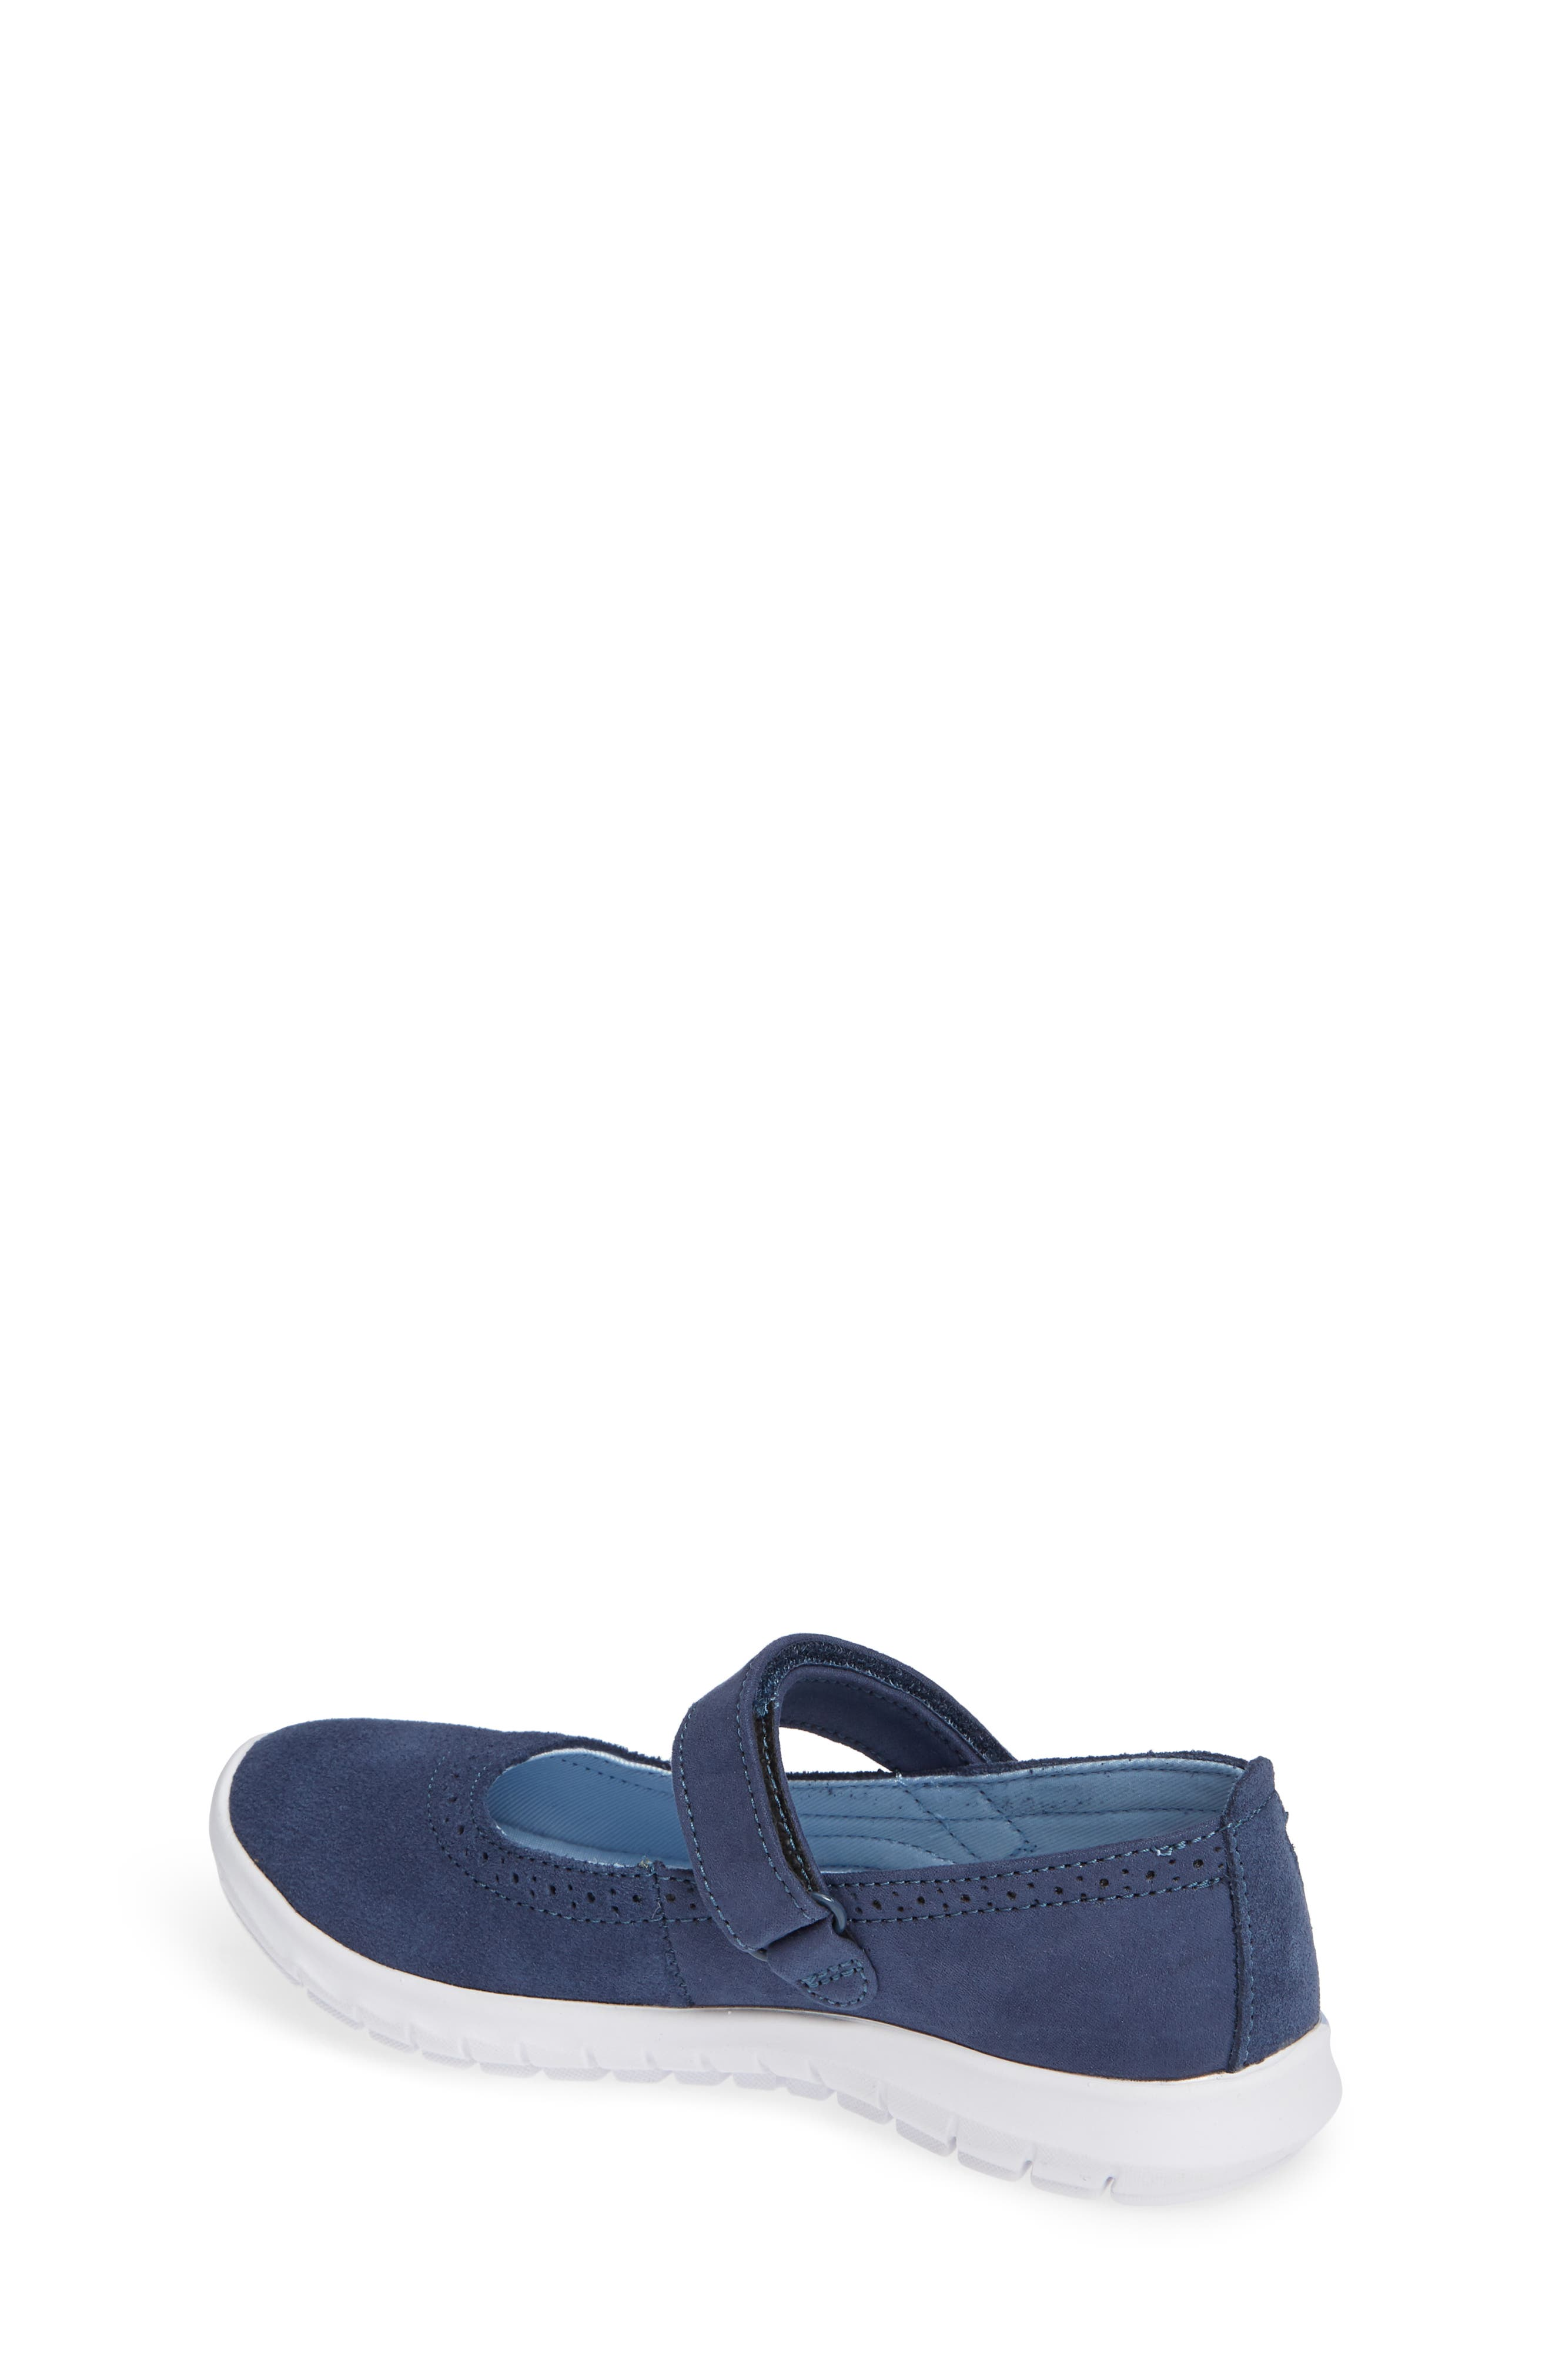 HUSH PUPPIES<SUP>®</SUP>, Flote Tricia Mary Jane Flat, Alternate thumbnail 2, color, NAVY